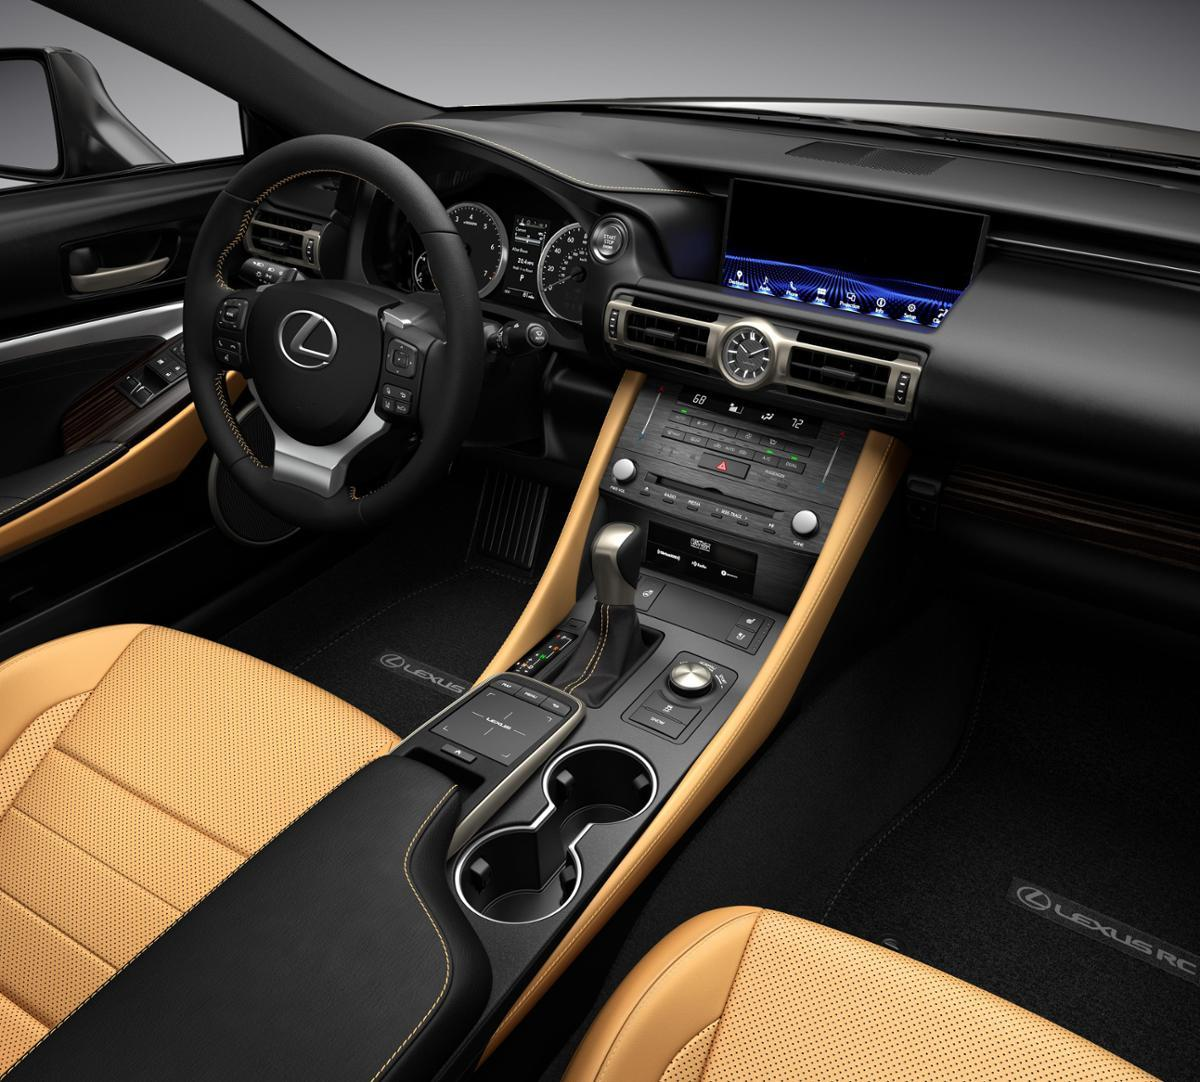 2019 Lexus Is Interior: New 2019 Lexus RC 300 For Sale In Farmingdale, NY